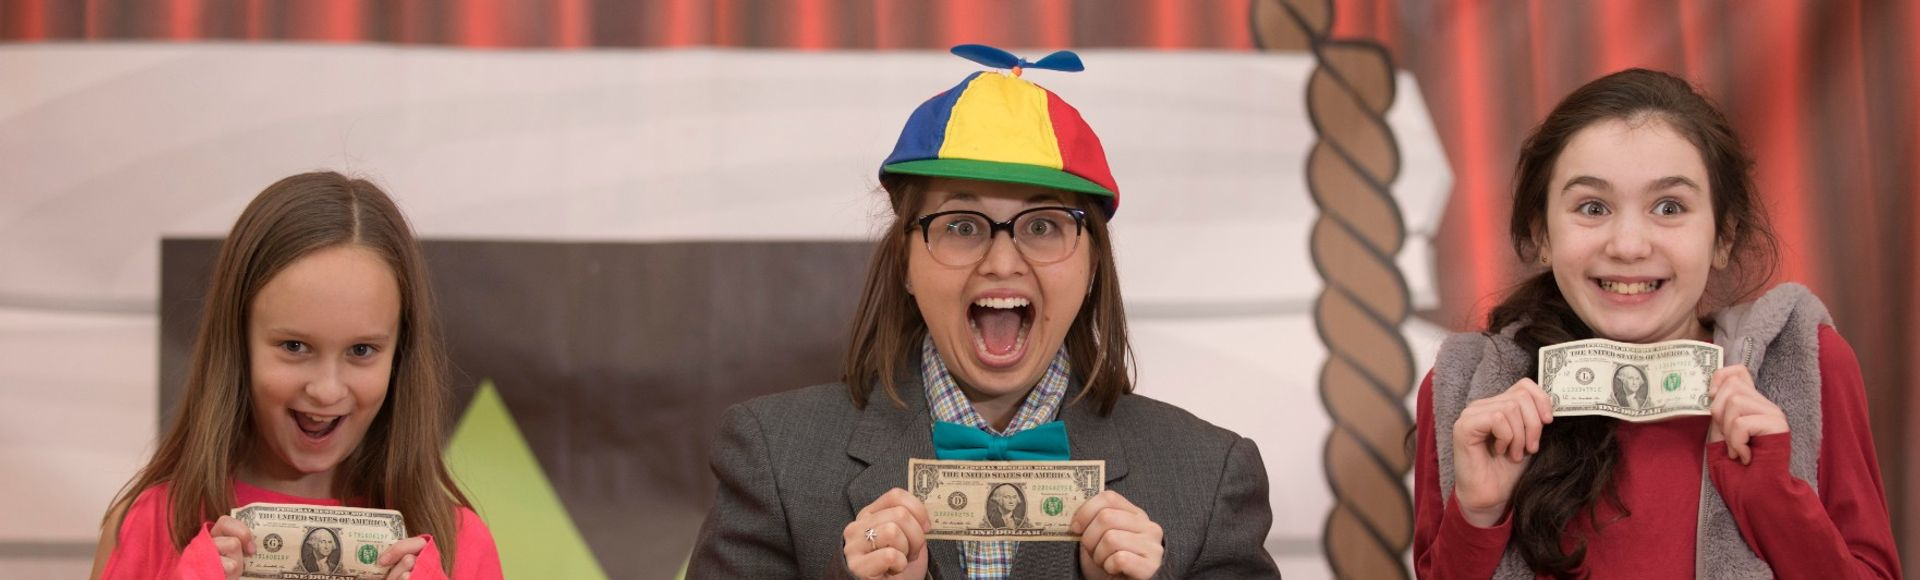 children's theater performer in a funny hat holding up dollar bills with two kids